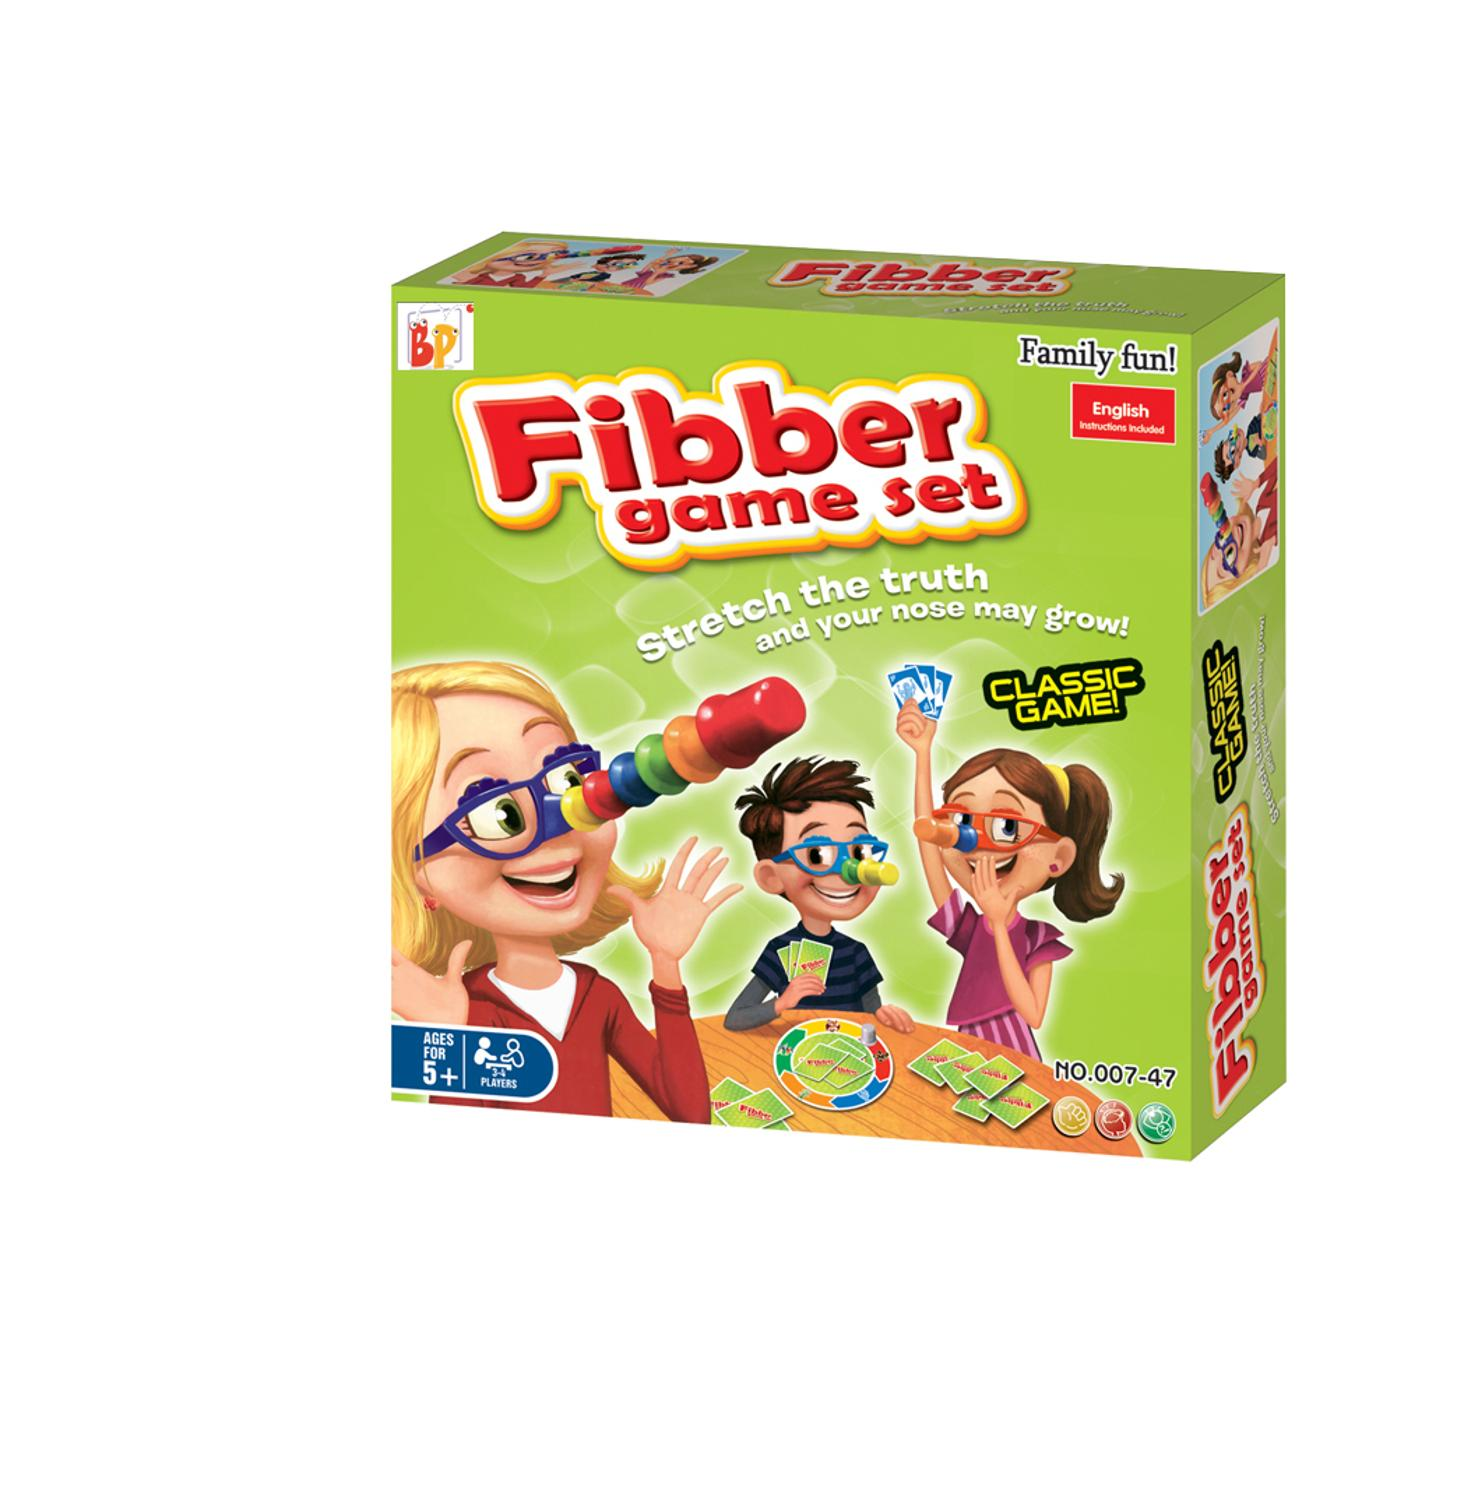 Truth or Lying: Game of Table (game of L liar, Fibber game set, order child juego, card game, truth or lying)